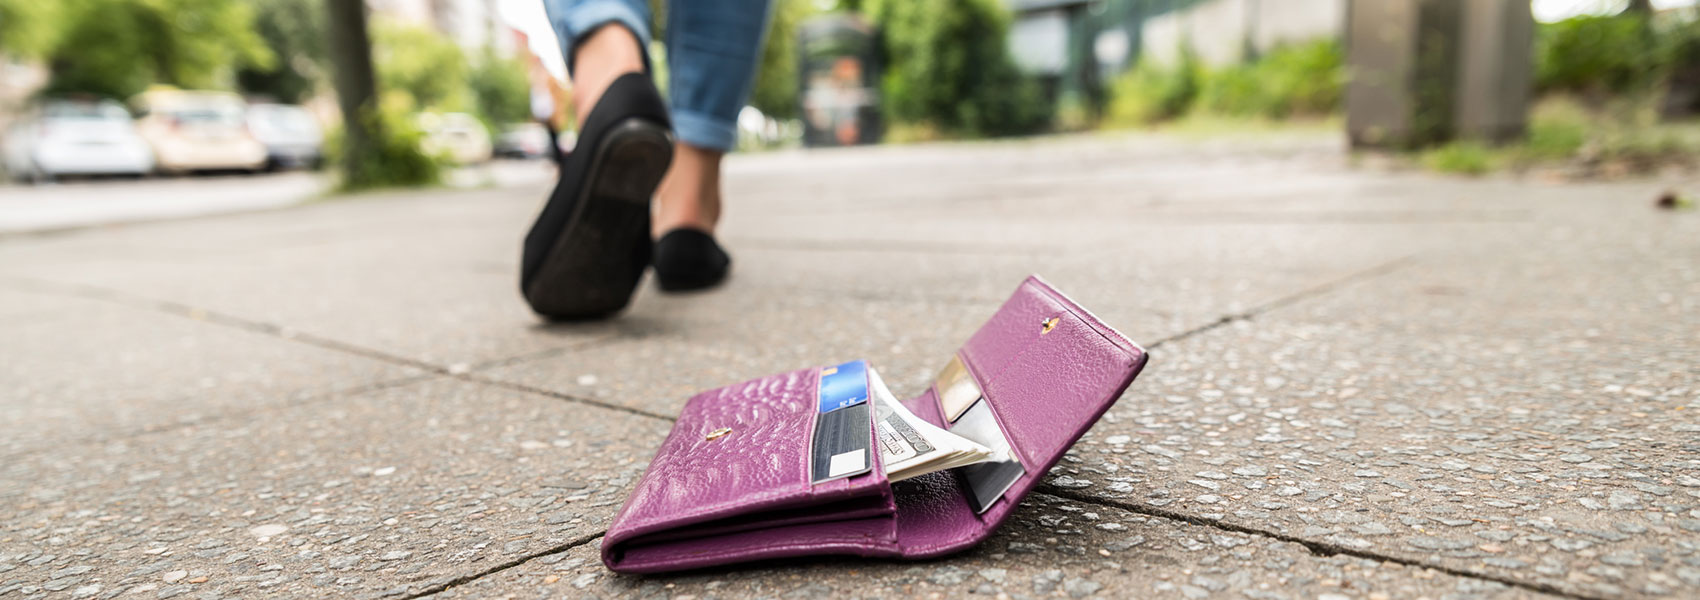 woman walking away from dropped wallet